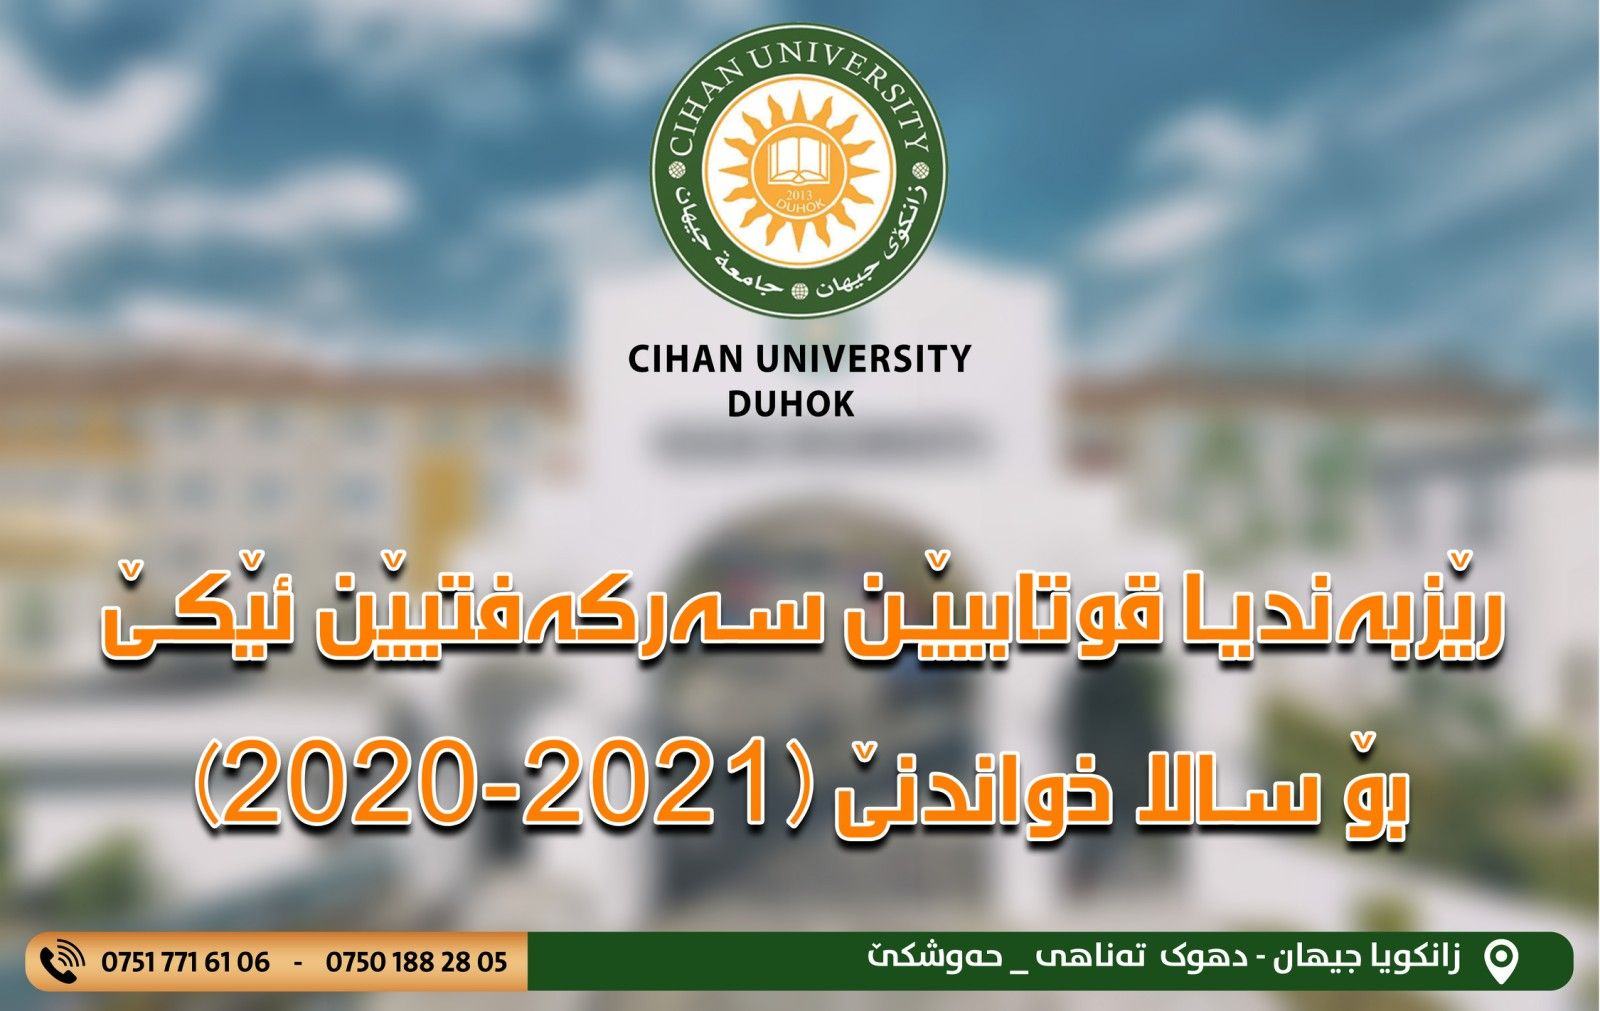 The sequence of top students for the academic year (2020-2021)